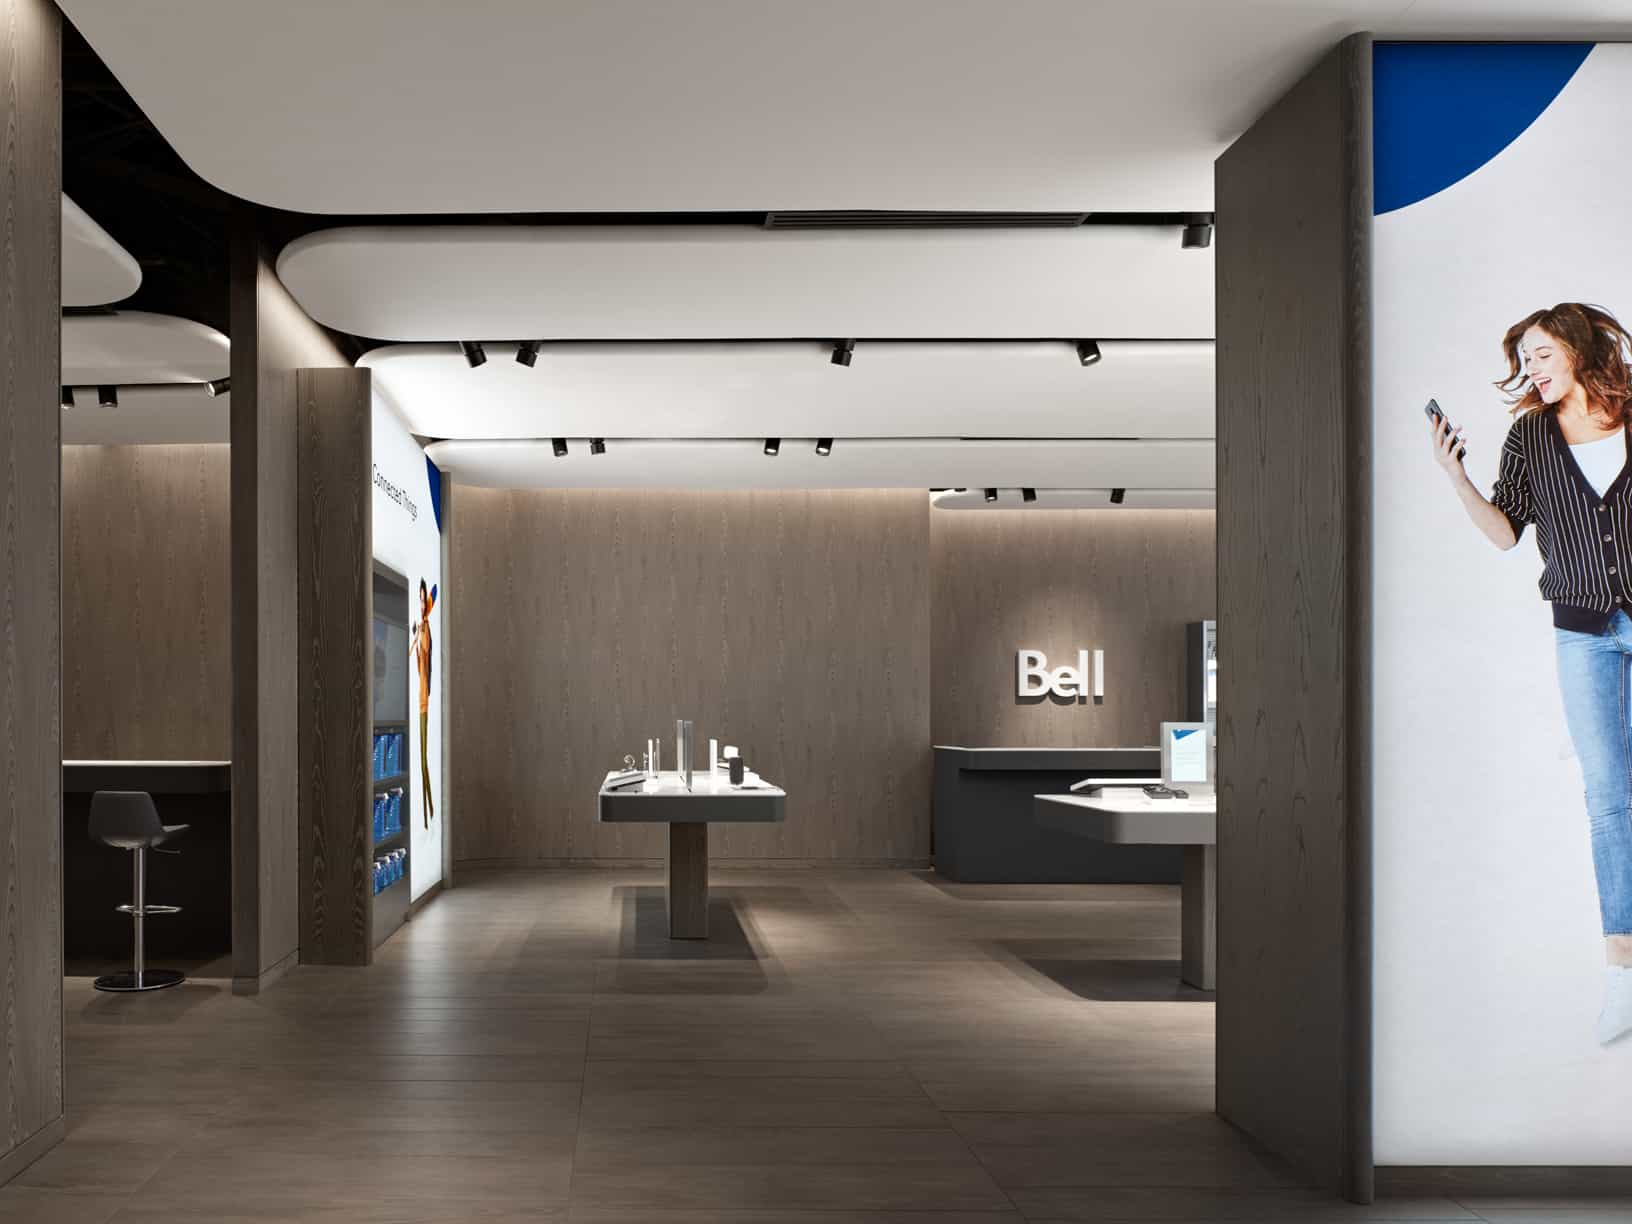 Bell Canada Launches 'Next-Gen' Retail Experience Designed by Award-Winning Firm